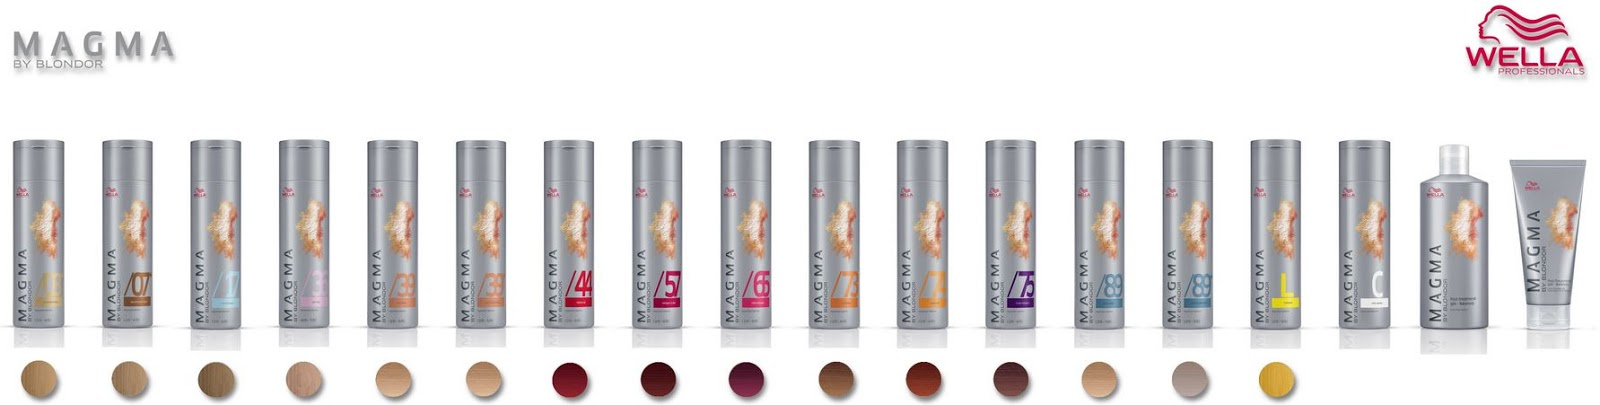 Ammonia free is not damage don  let the hype around that wella magma hair color  also siteandsite rh